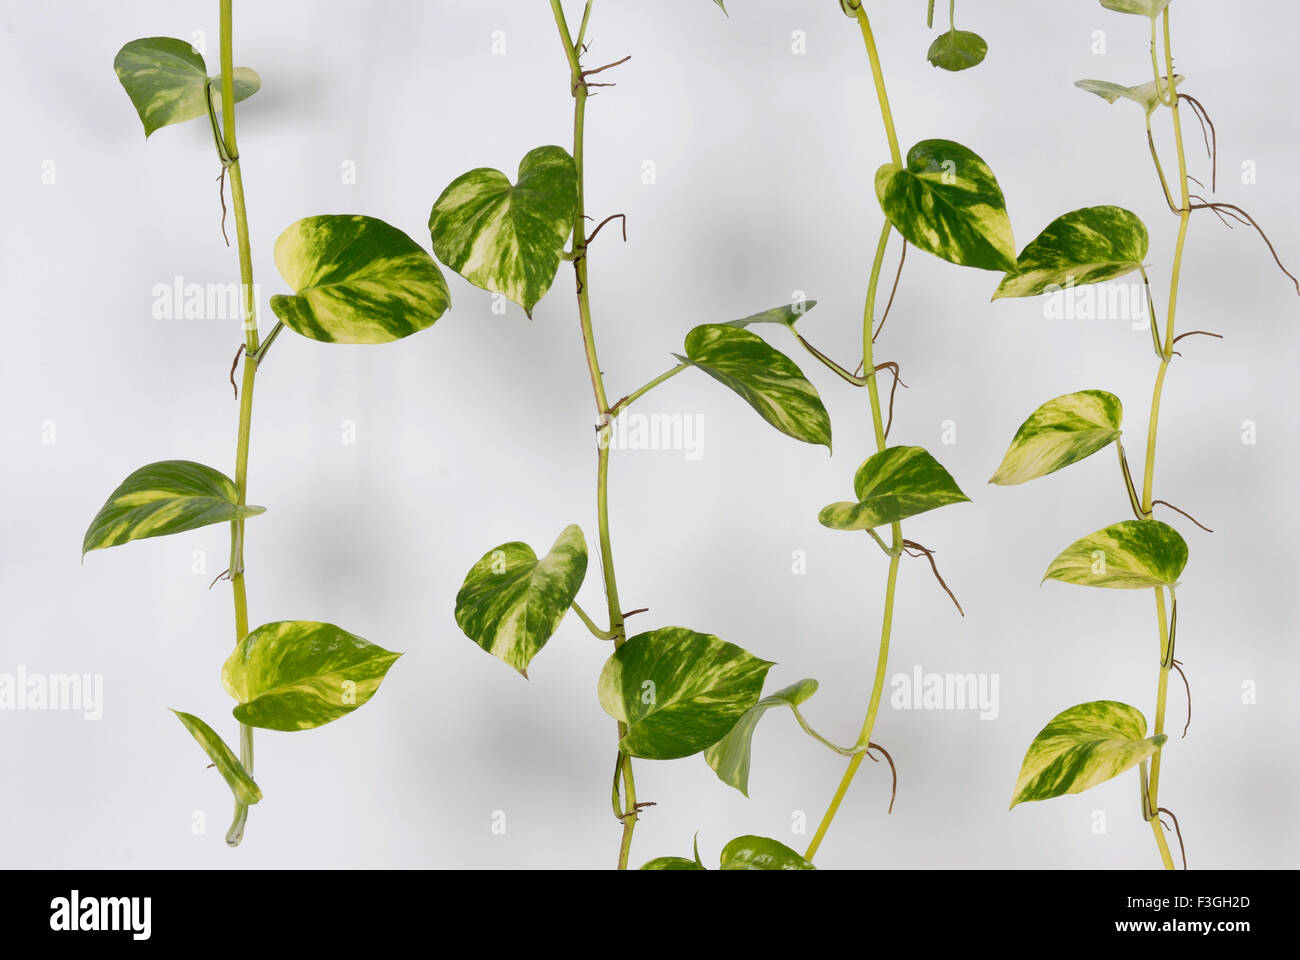 Many plant symbolize growth of wealth - Stock Image